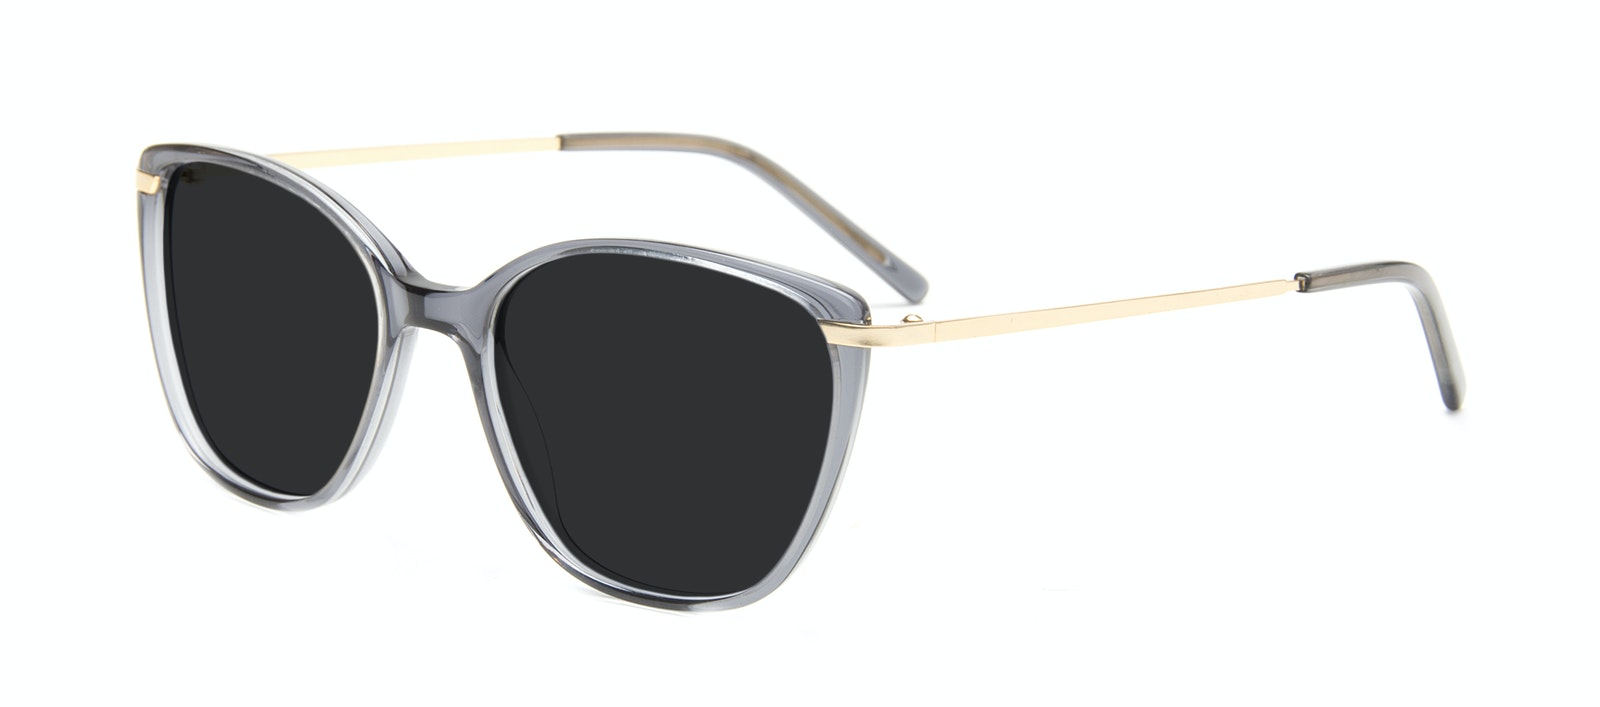 Affordable Fashion Glasses Rectangle Square Sunglasses Women Illusion Gold Shadow Tilt